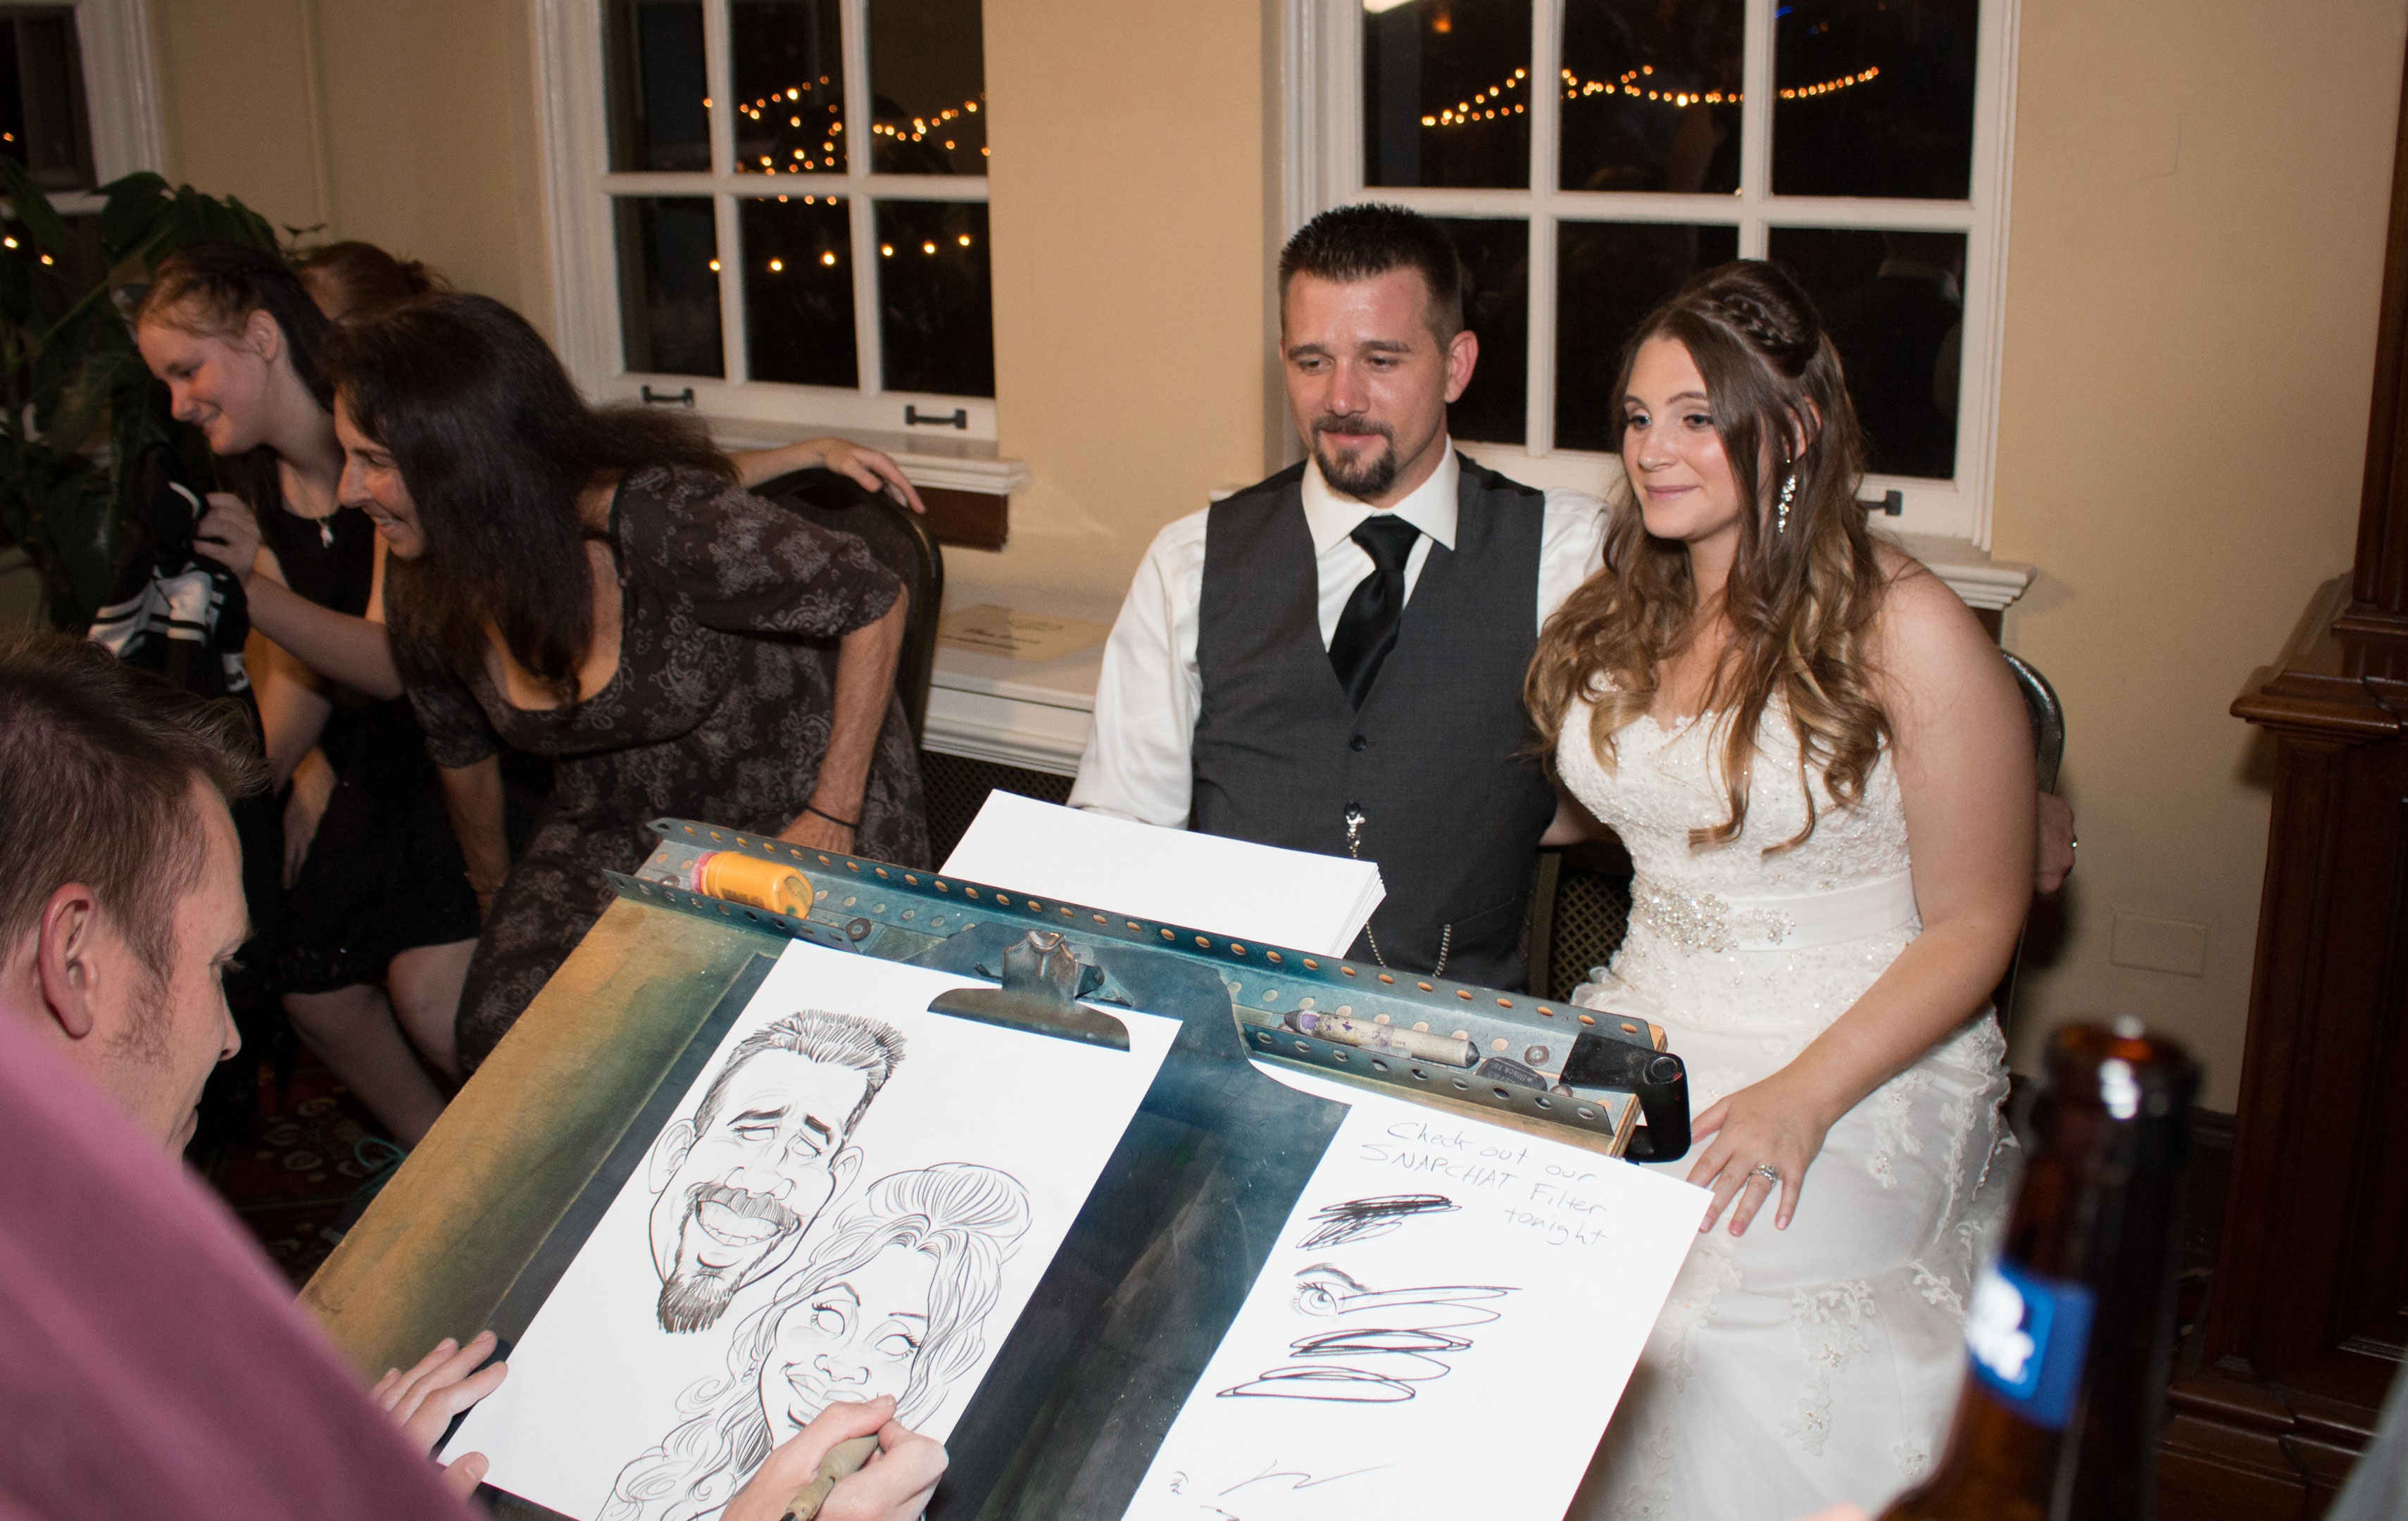 Wedding couple in st. louis getting caricature drawn by Bax Illustration